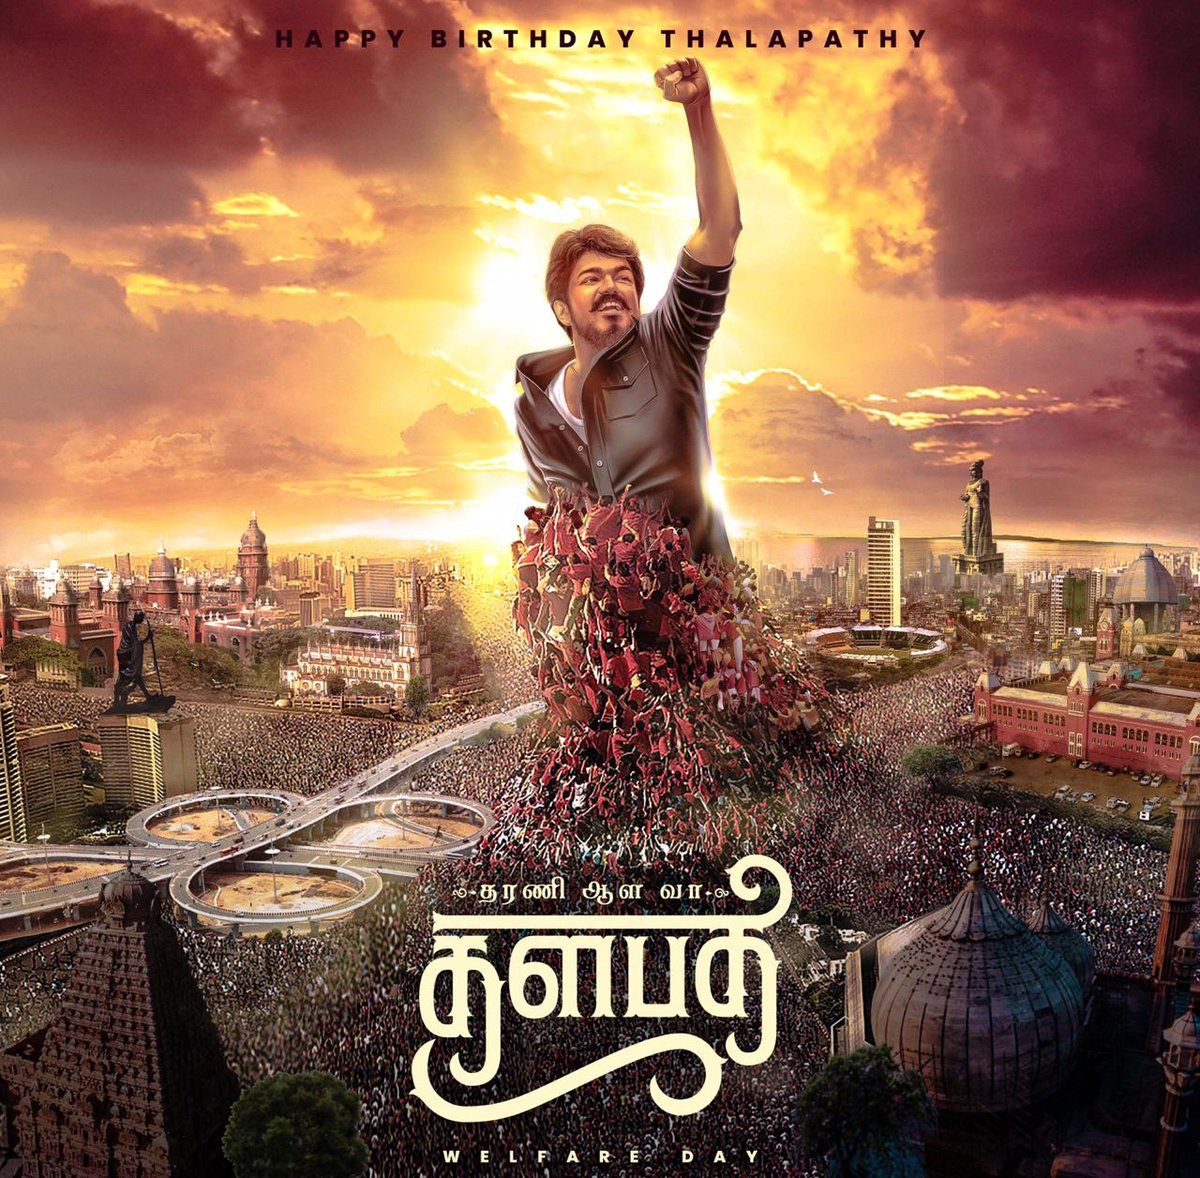 Wow, the best Common DP created by fans so far. On par with first look posters 👌👌#ThalapathyBDayCDP